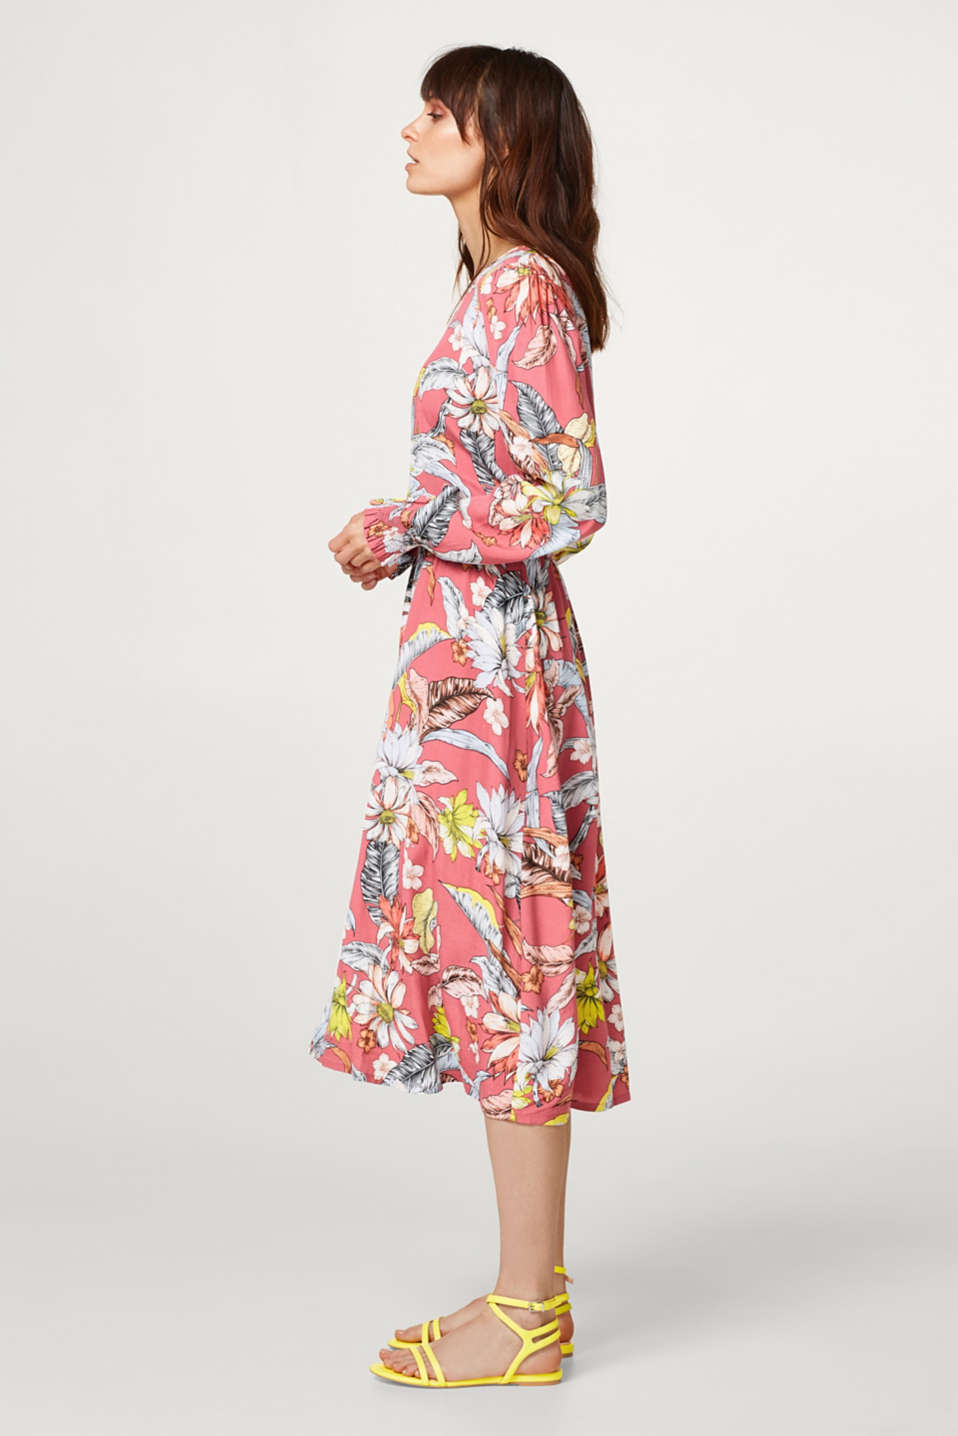 Flowing midi dress with a stunning floral print